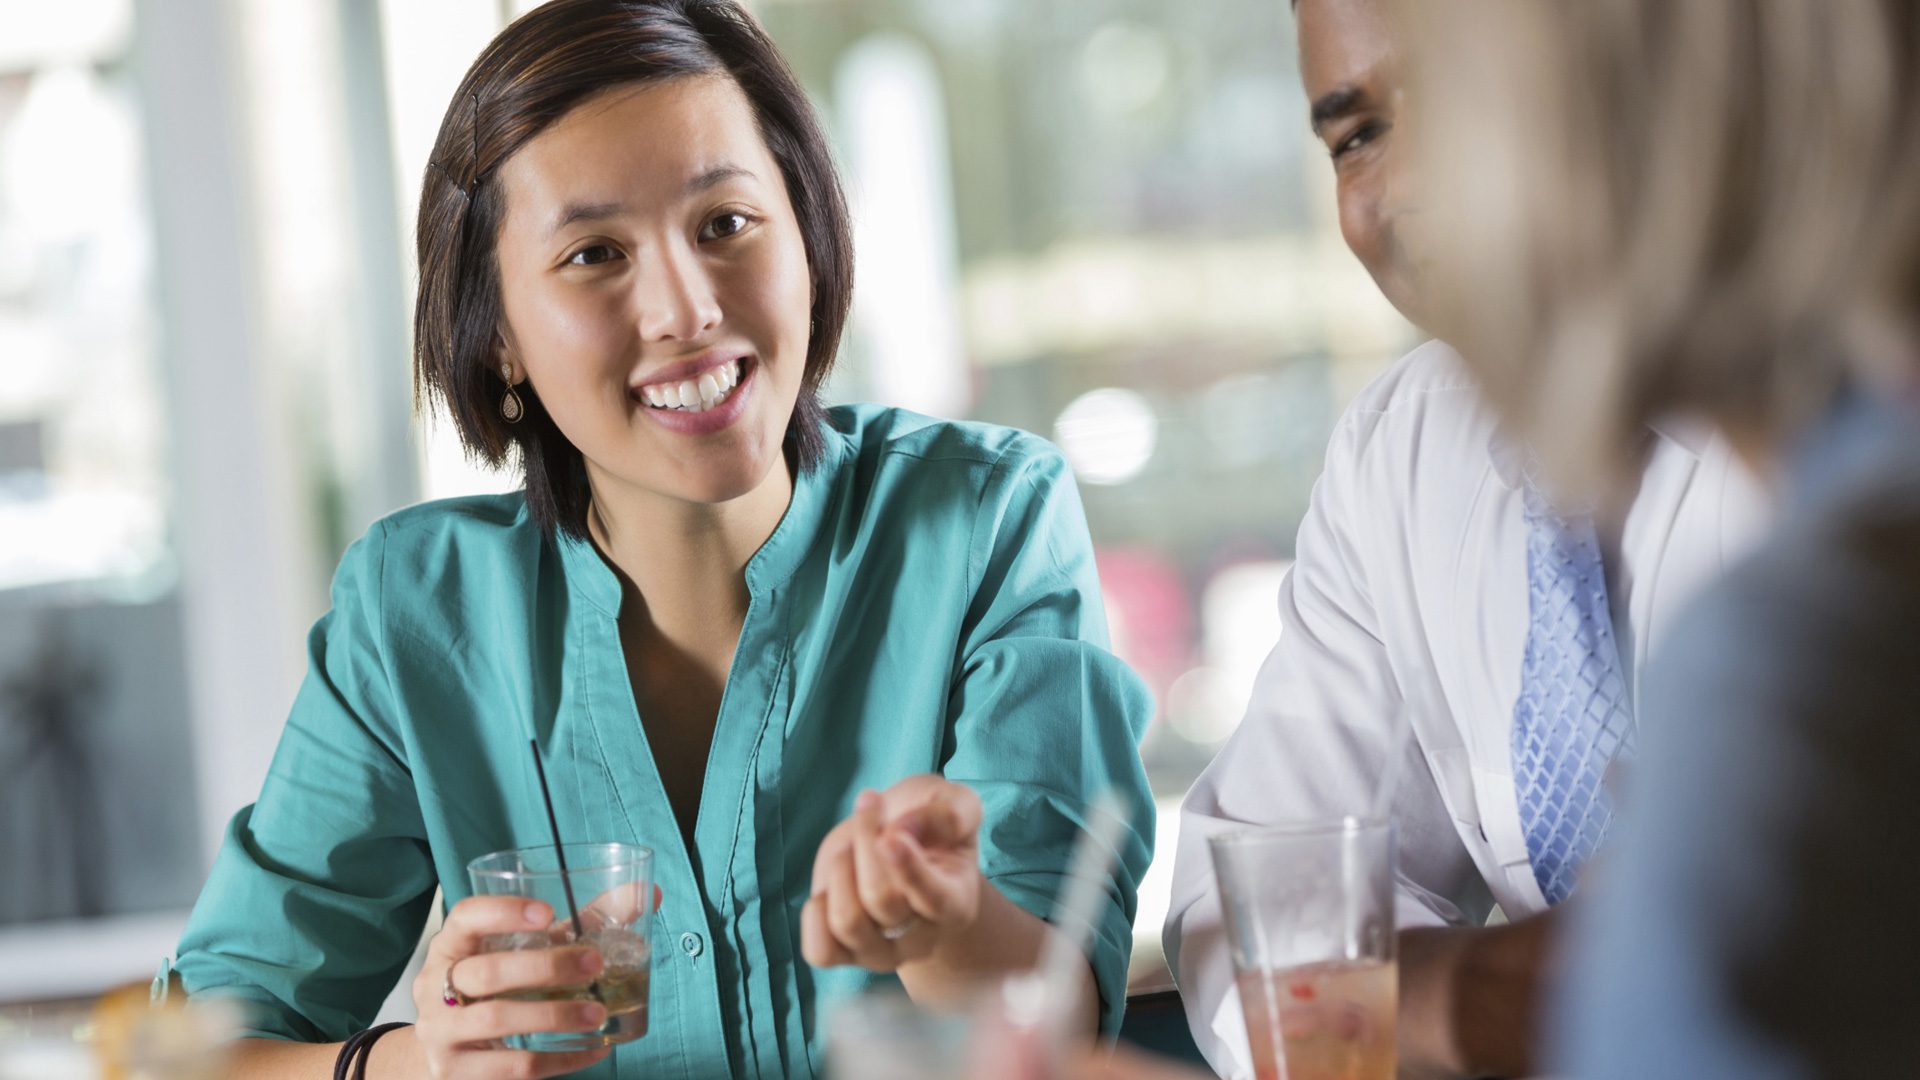 Woman having cocktails with co-workers